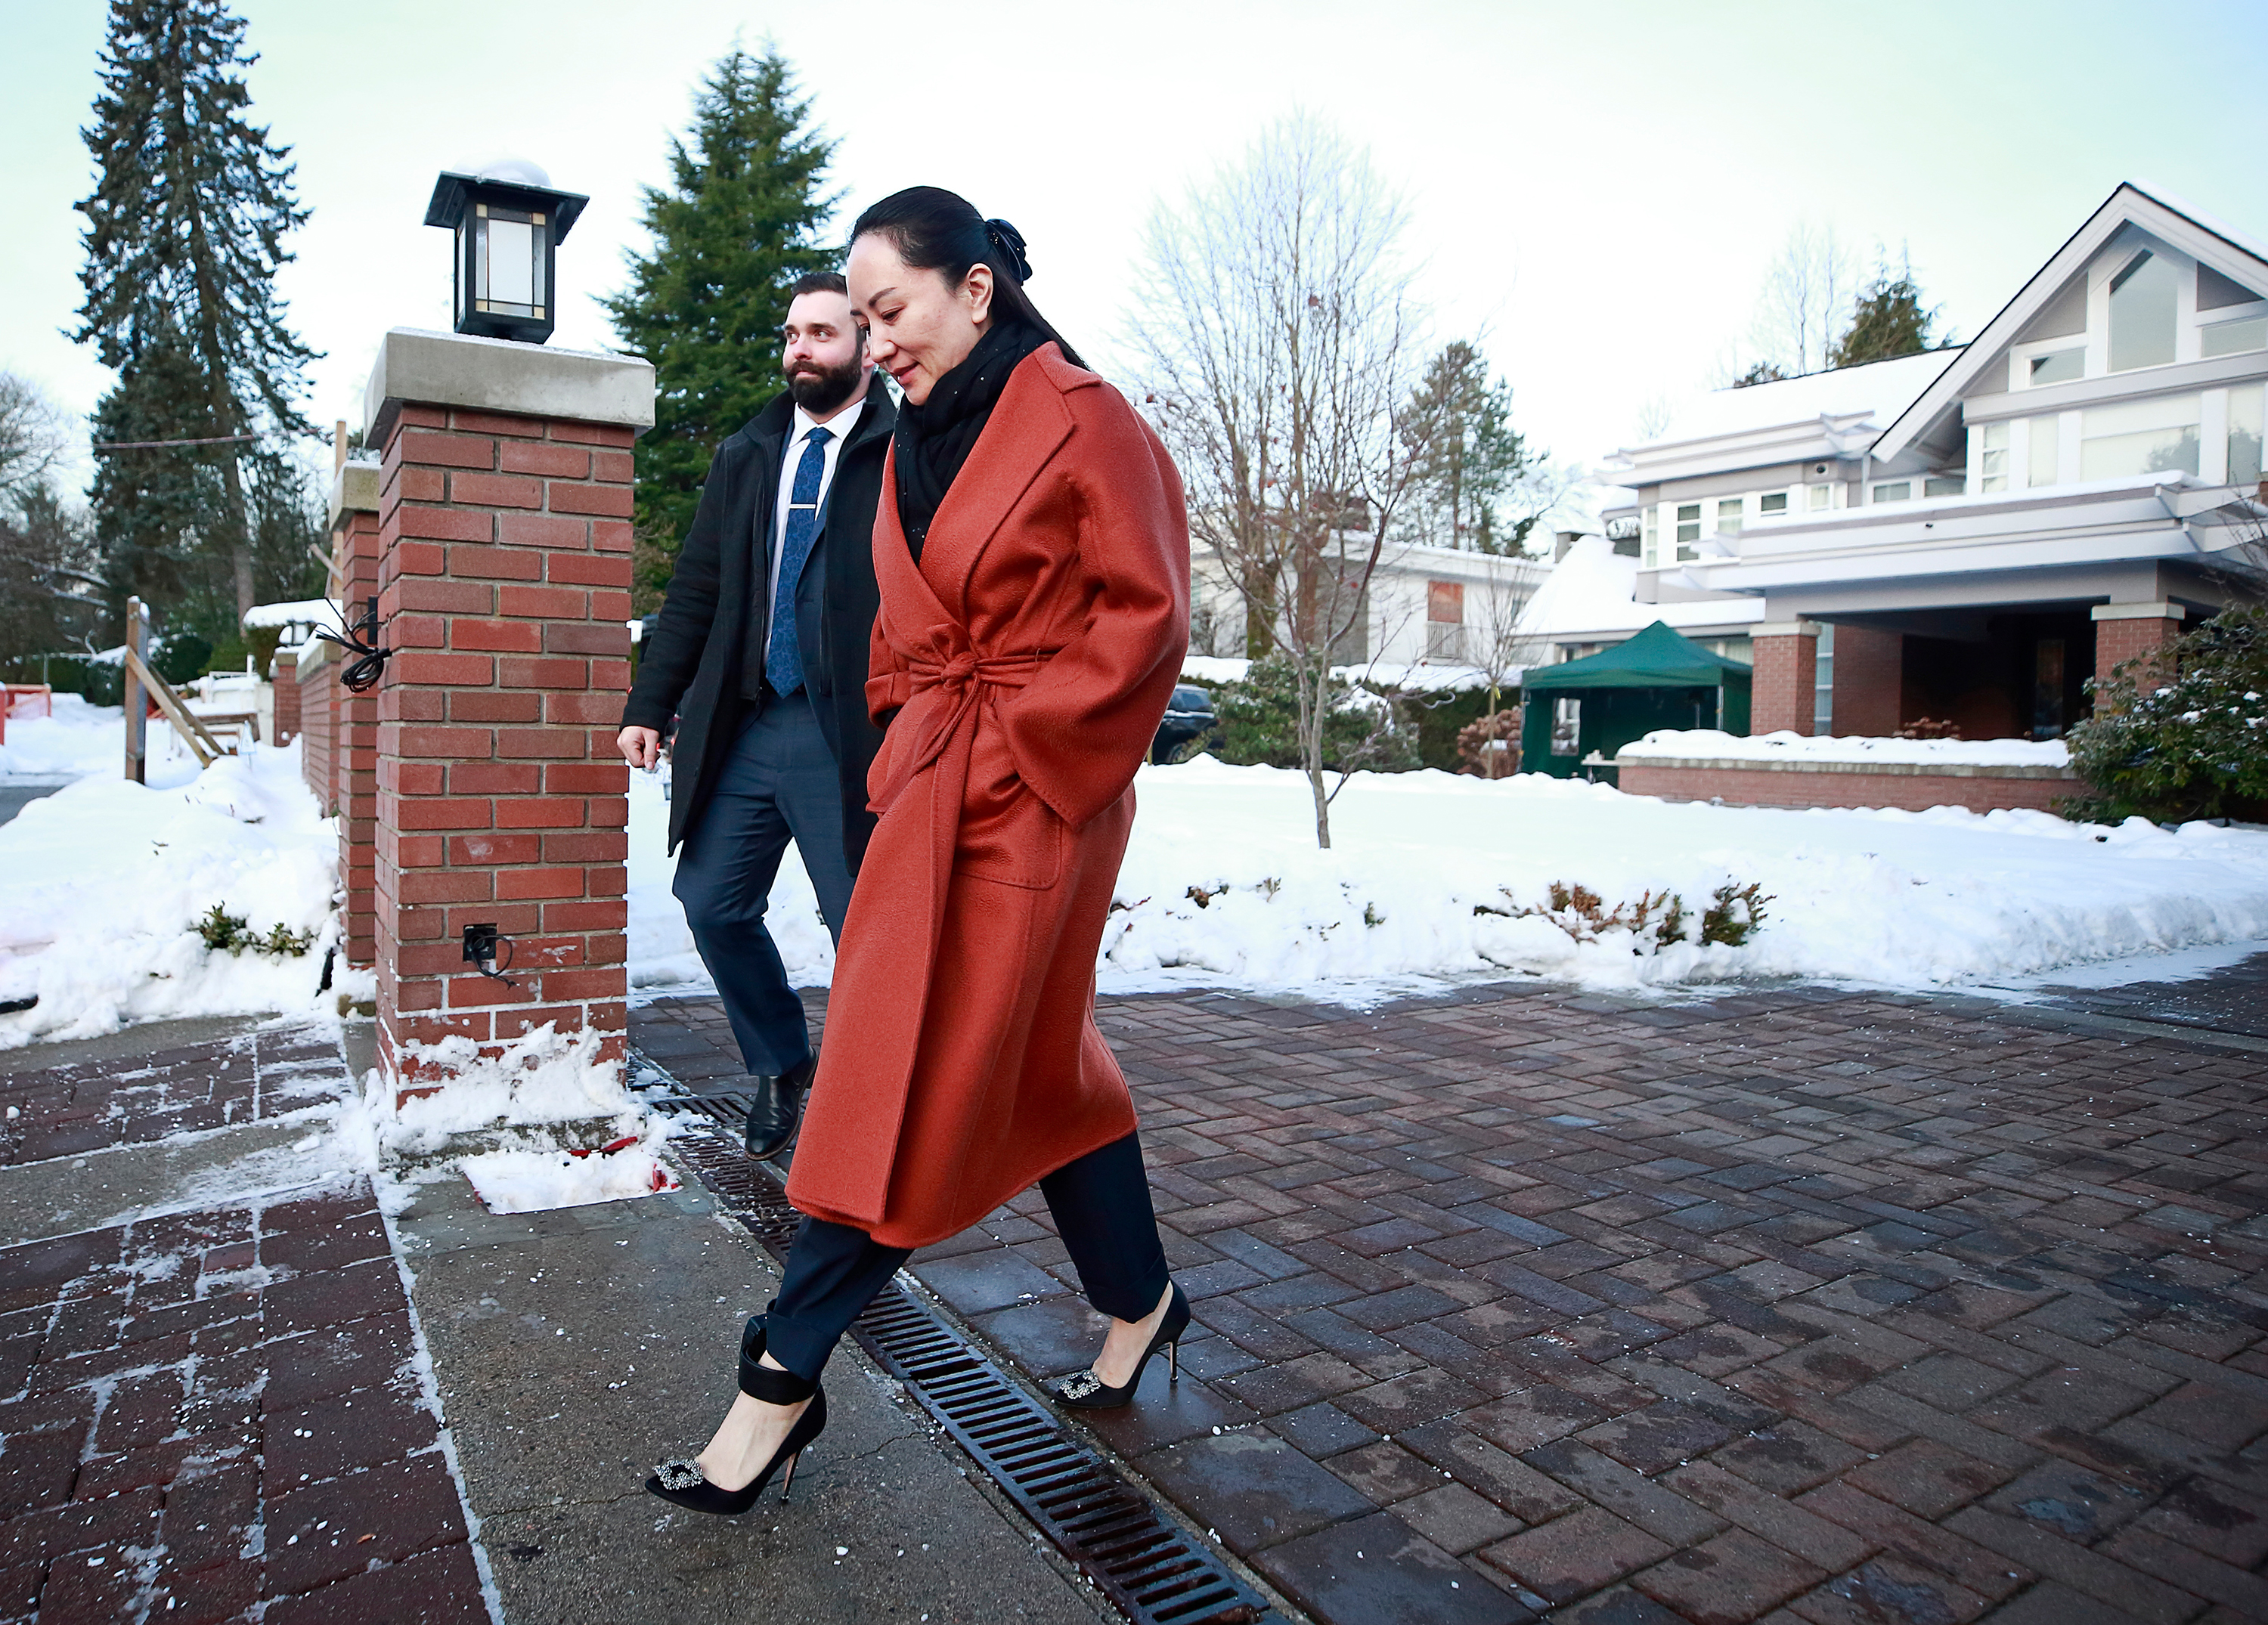 Canadian judge weighing whether to extradite Huawei's Meng Wanzhou to United States